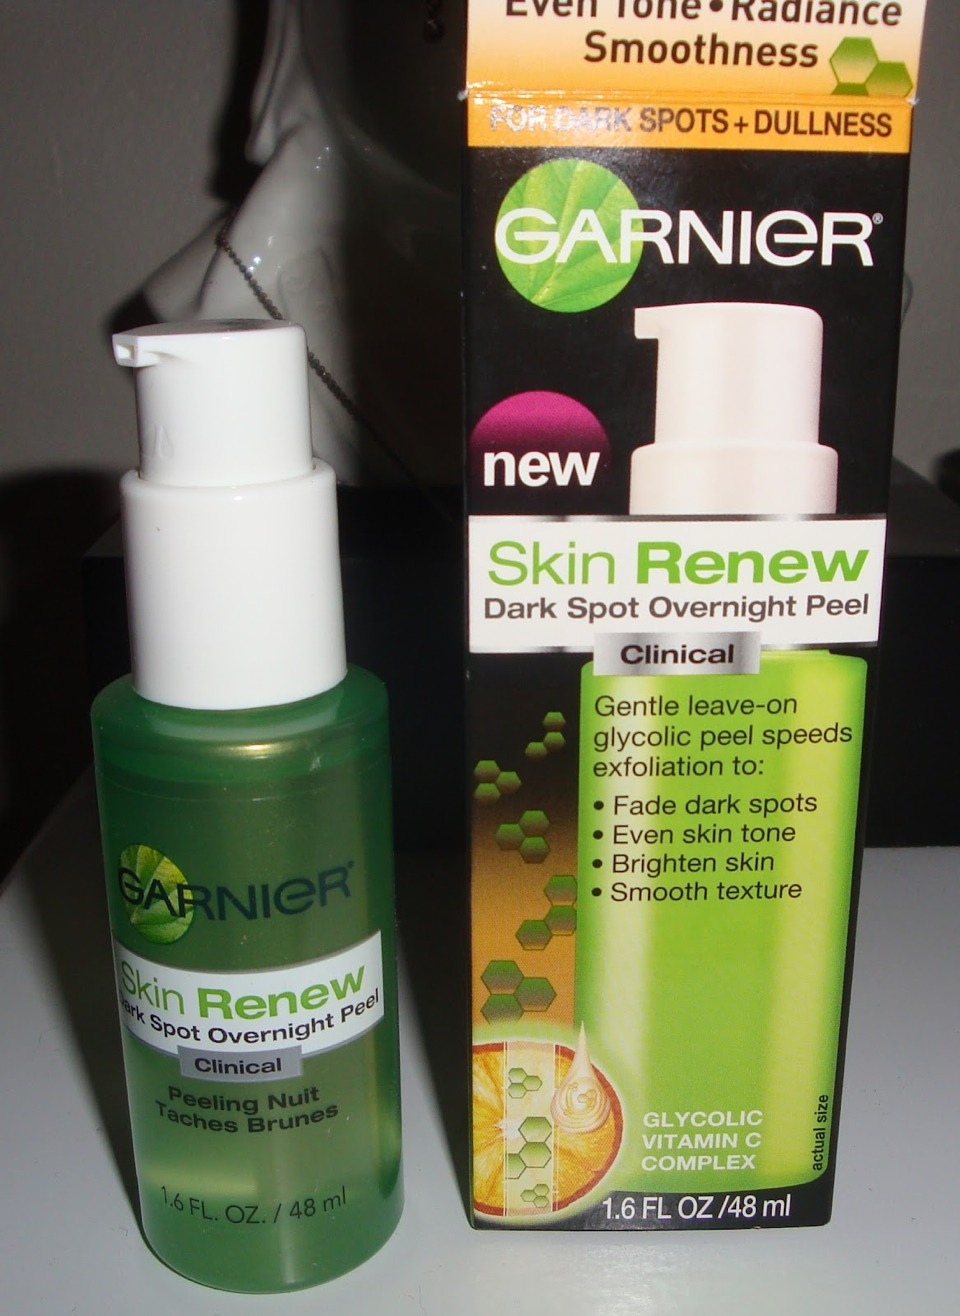 Garner skin renew dark spot overnight peel: This leave-on glycolic peel will help fade dark spots, even out skin tone and brighten and smooth your skin. With glycolic vitamin C to gently exfoliate and polish, this peel is non-comedogenic and won't clog your pores while you snooze!